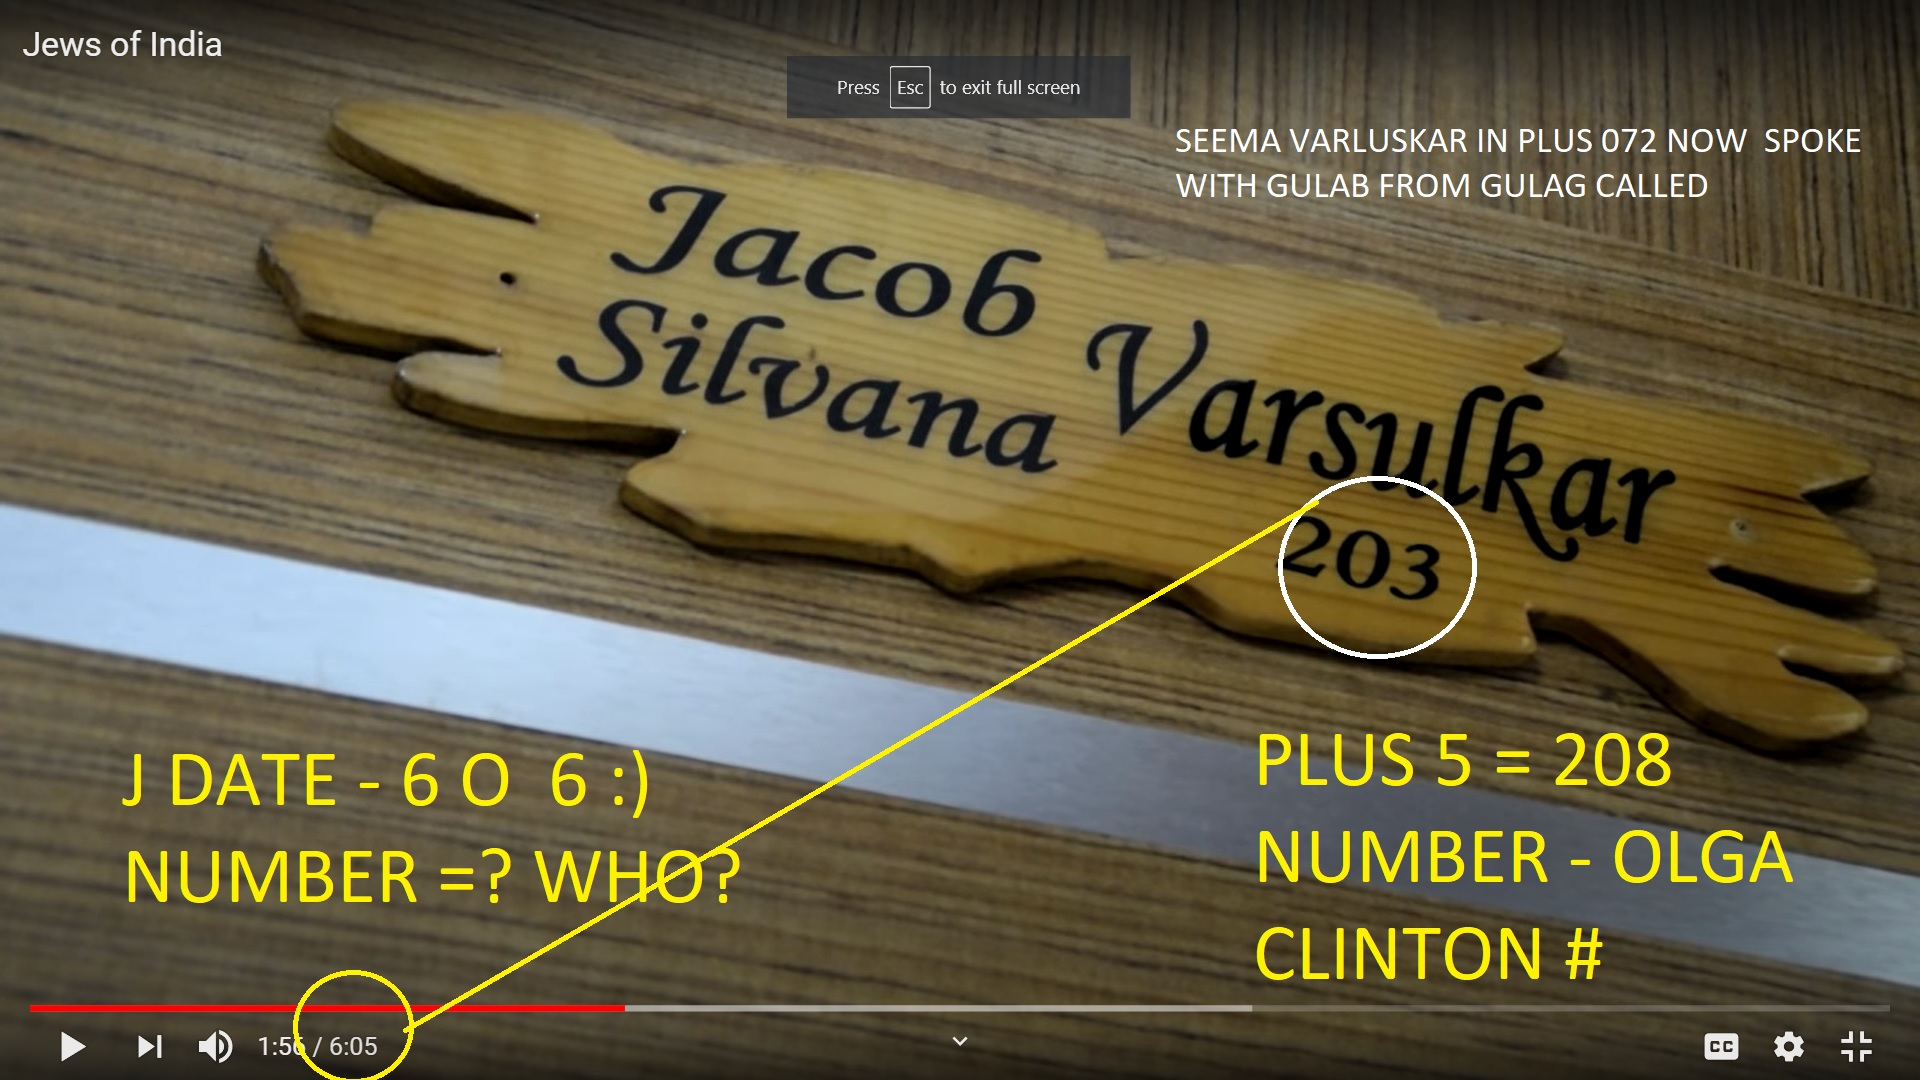 SEEMA VARLUSKAR IN PLUS 072 NOW SPOKE WITH GULAB FROM GULAG CALLED OLGA CLINTON NUMBER 5